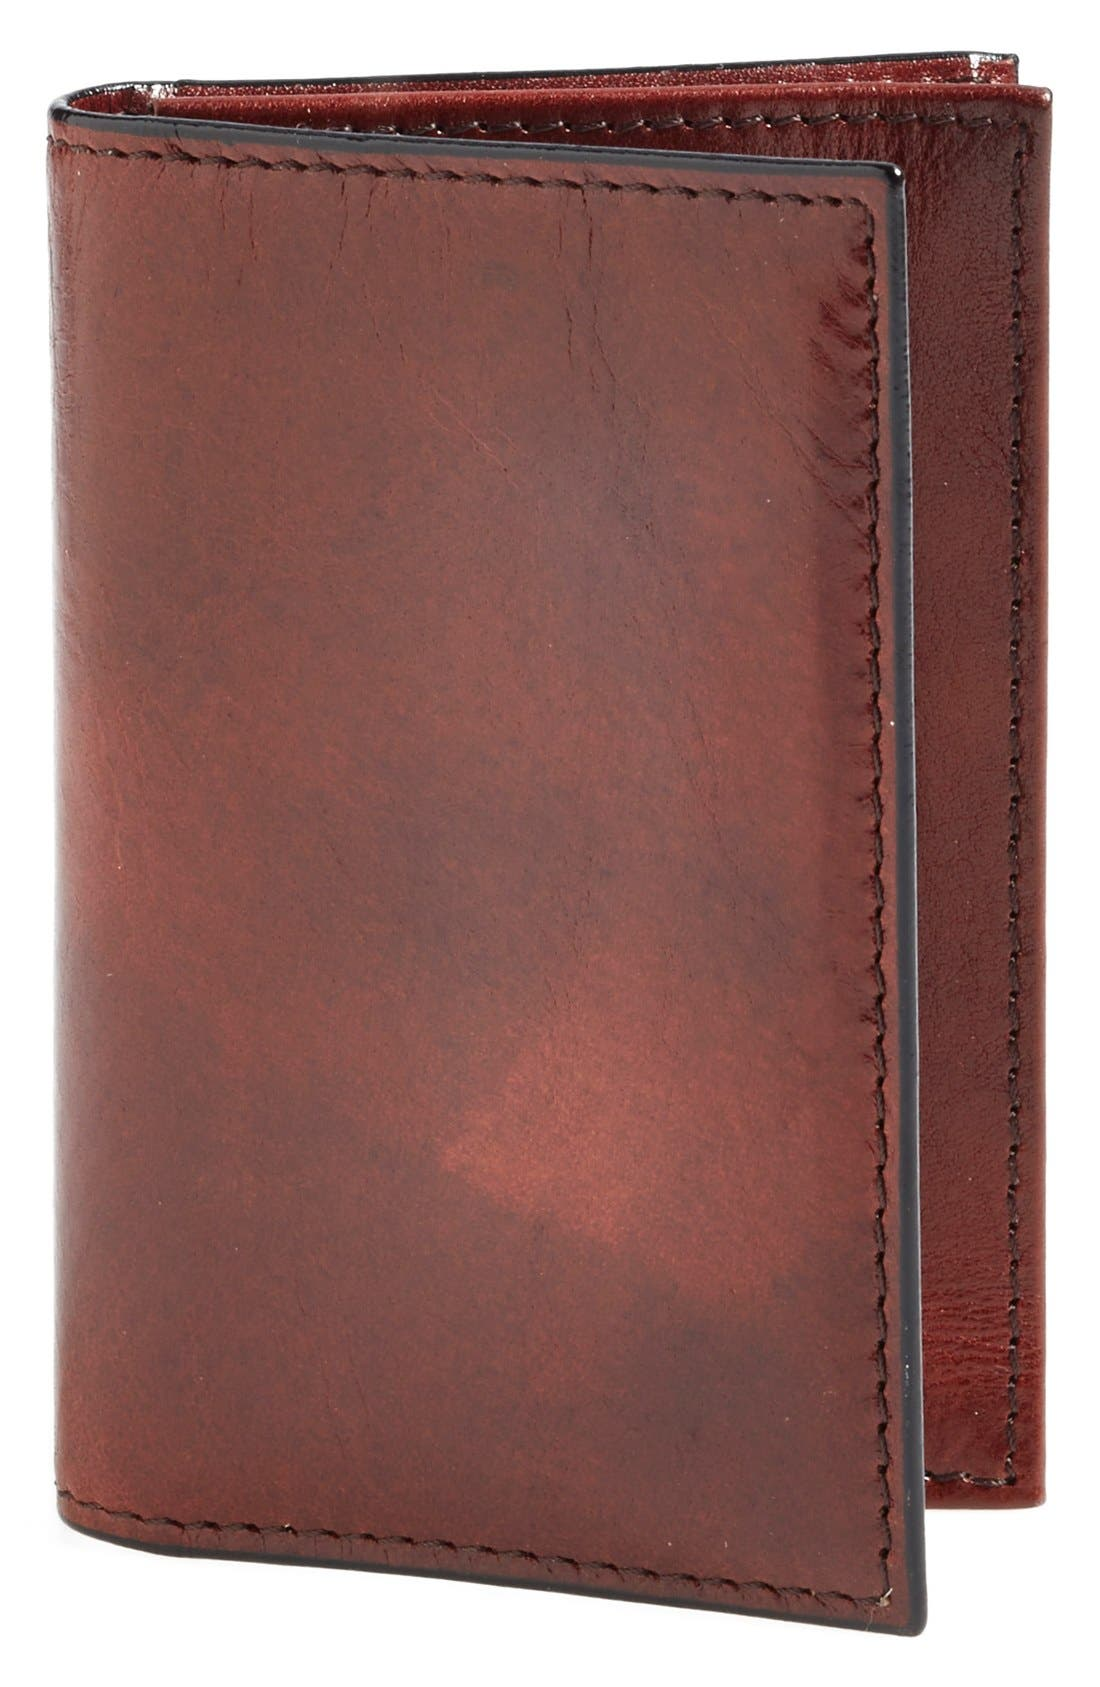 'Old Leather' Gusset Wallet,                         Main,                         color, Dark Brown